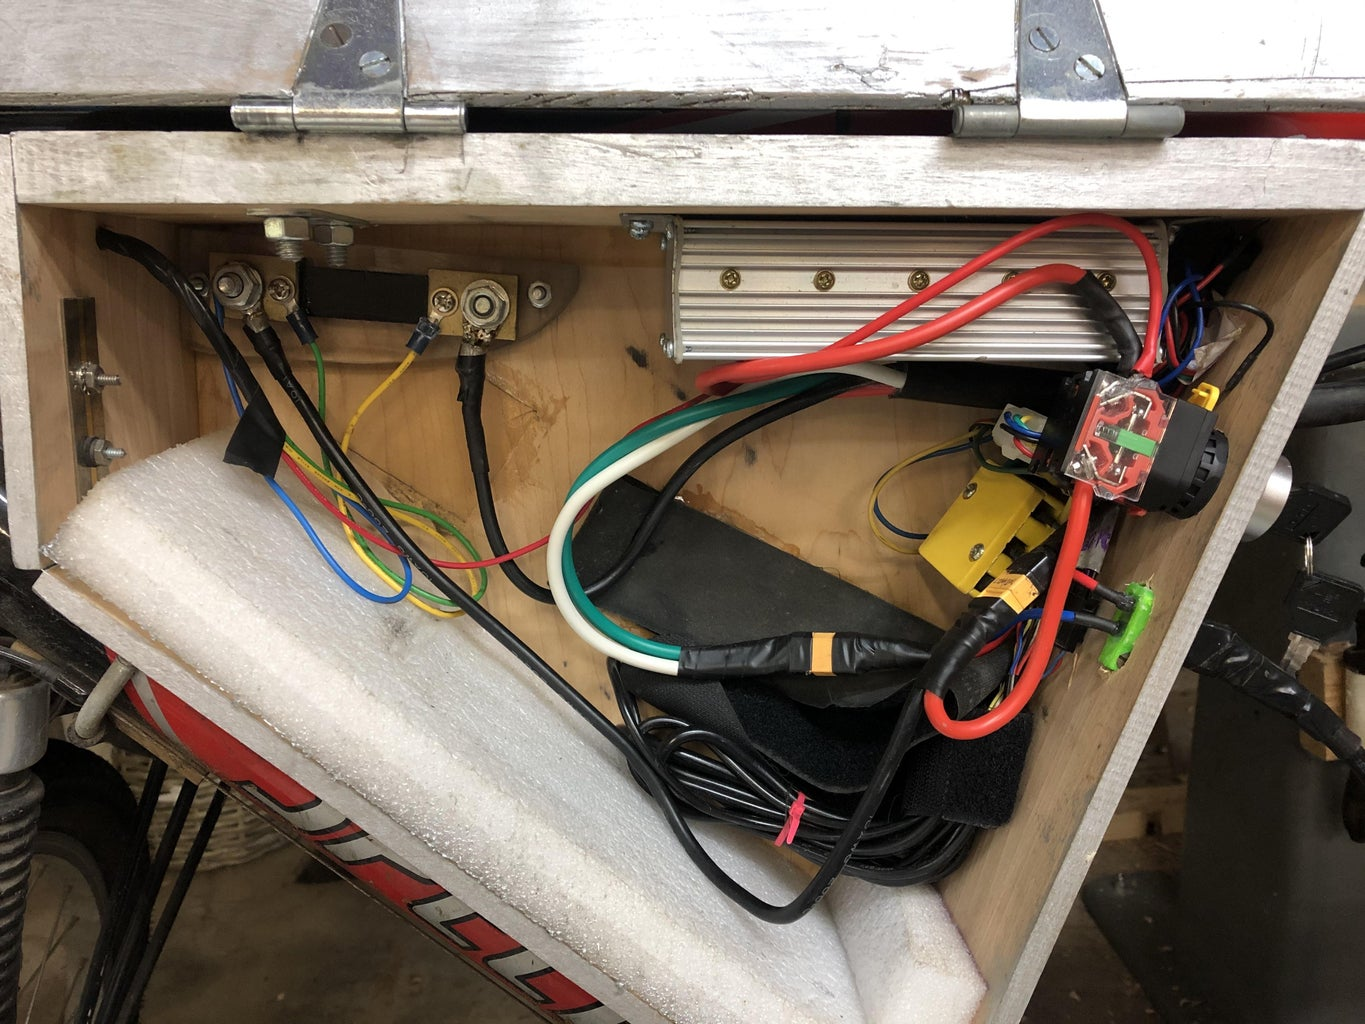 Wiring the Batteries From Battery Box to Central Housing